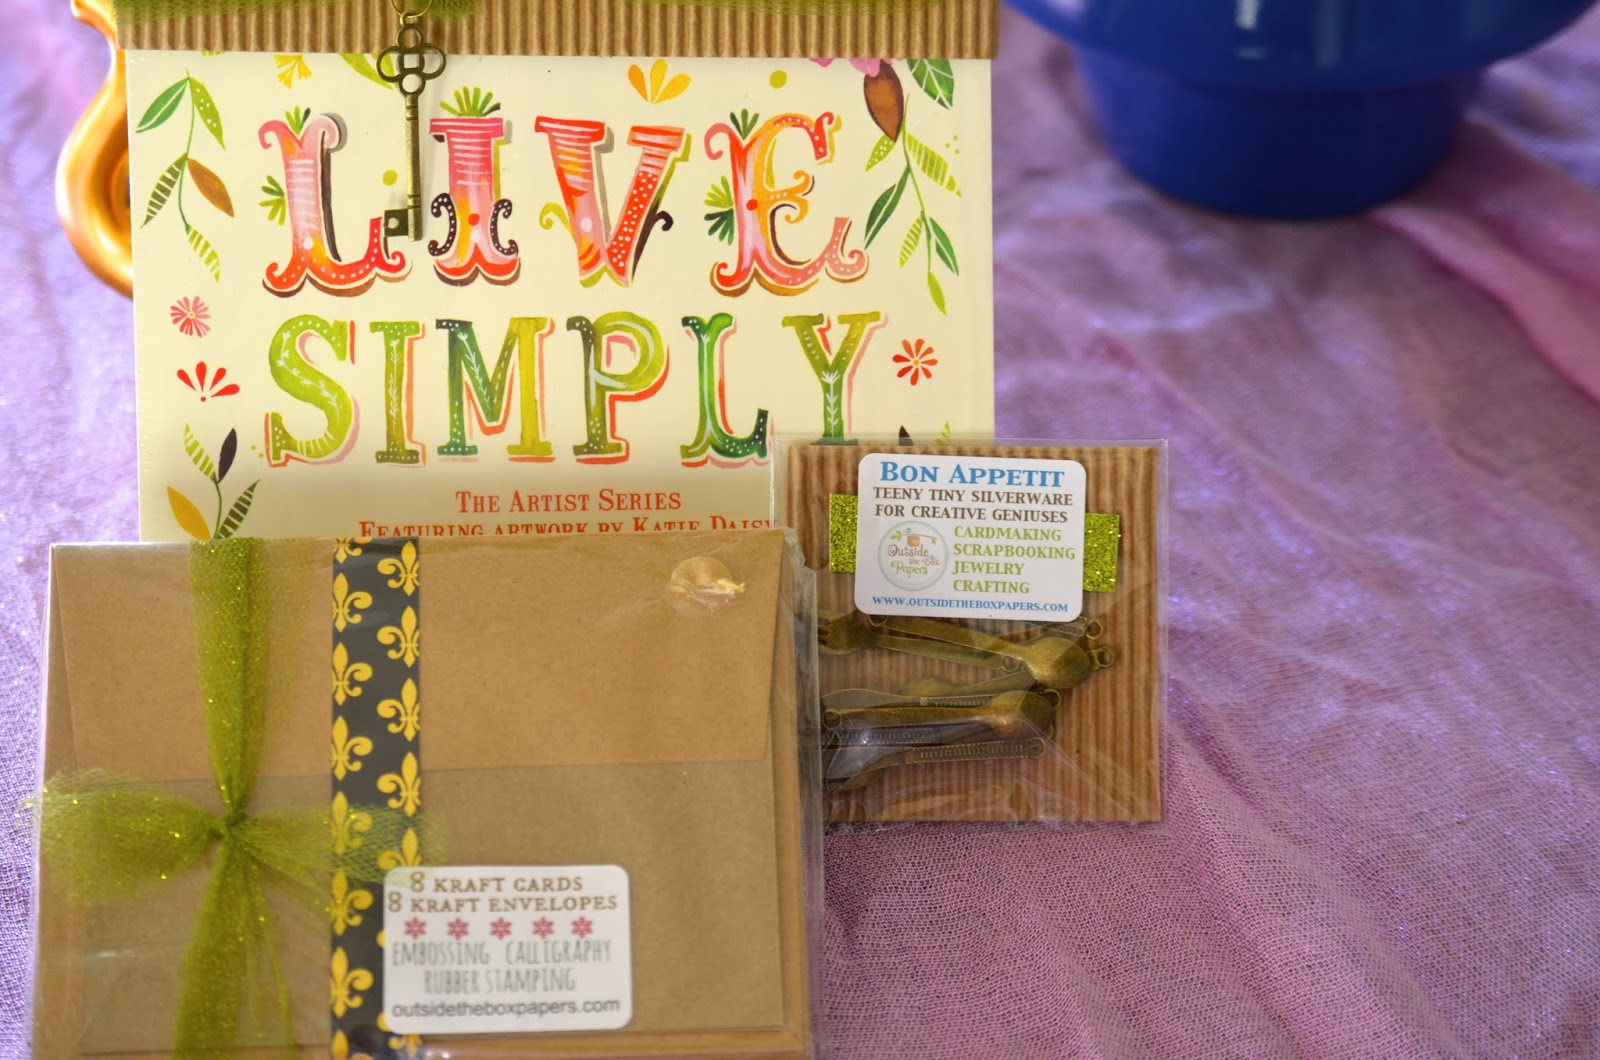 Outside the Box Papers Blog Giveaway